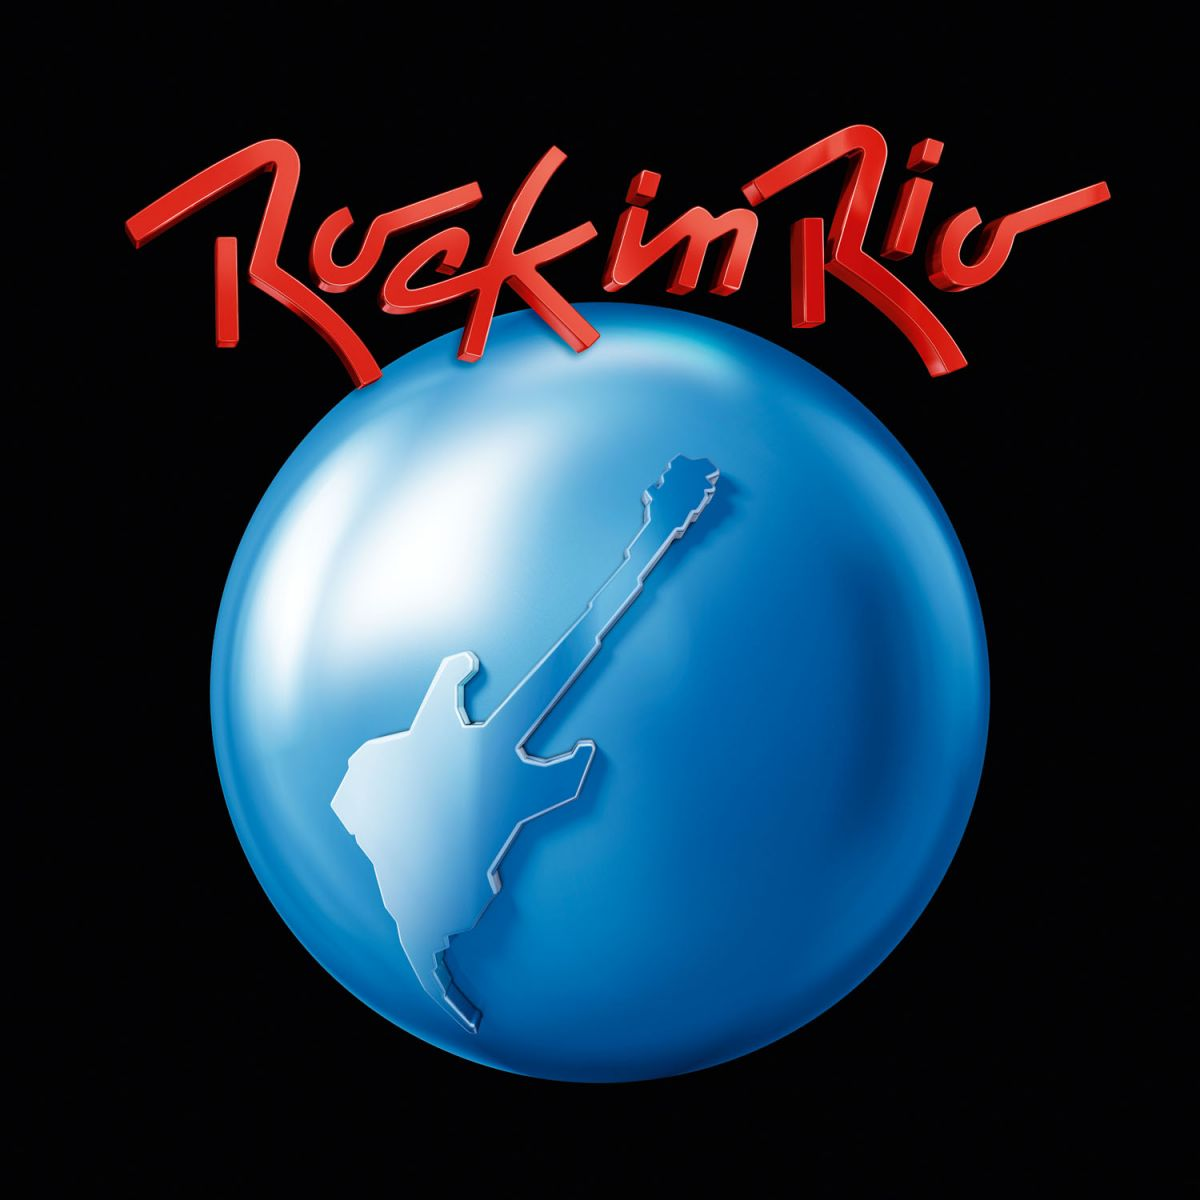 Rock in Rio,Rock in Rio Card,ingressos,esgotaram